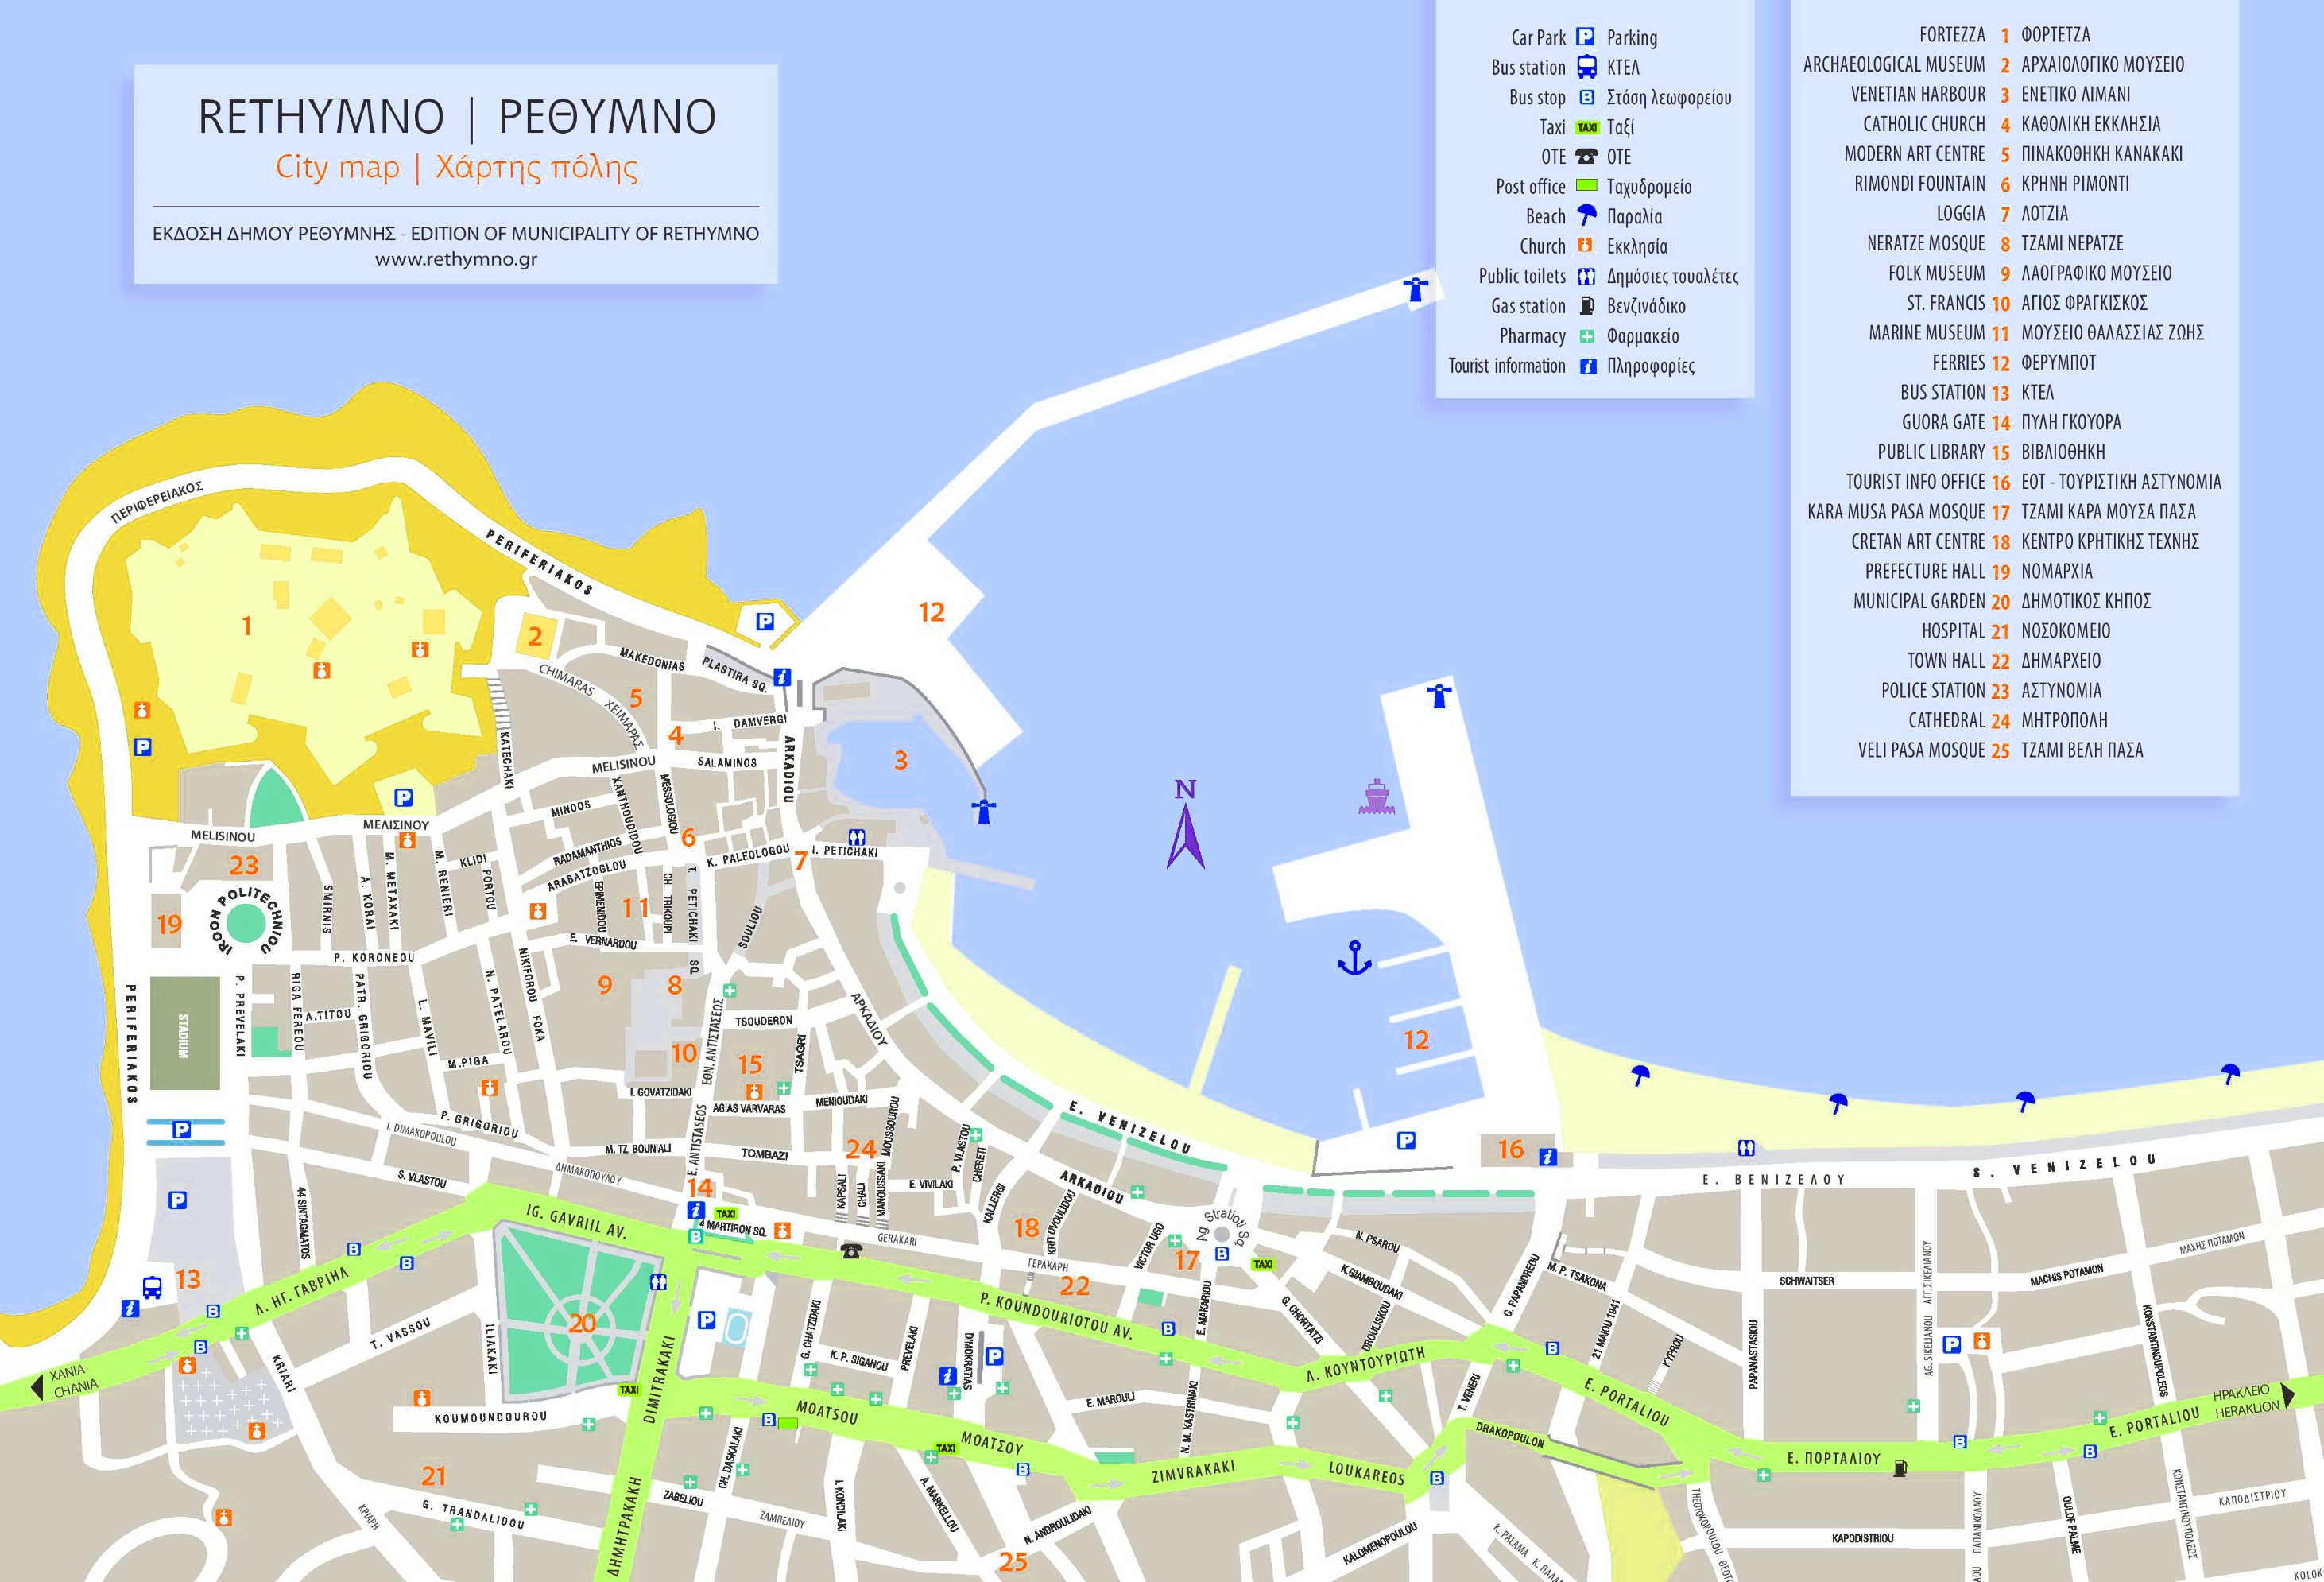 Rethymno tourist map